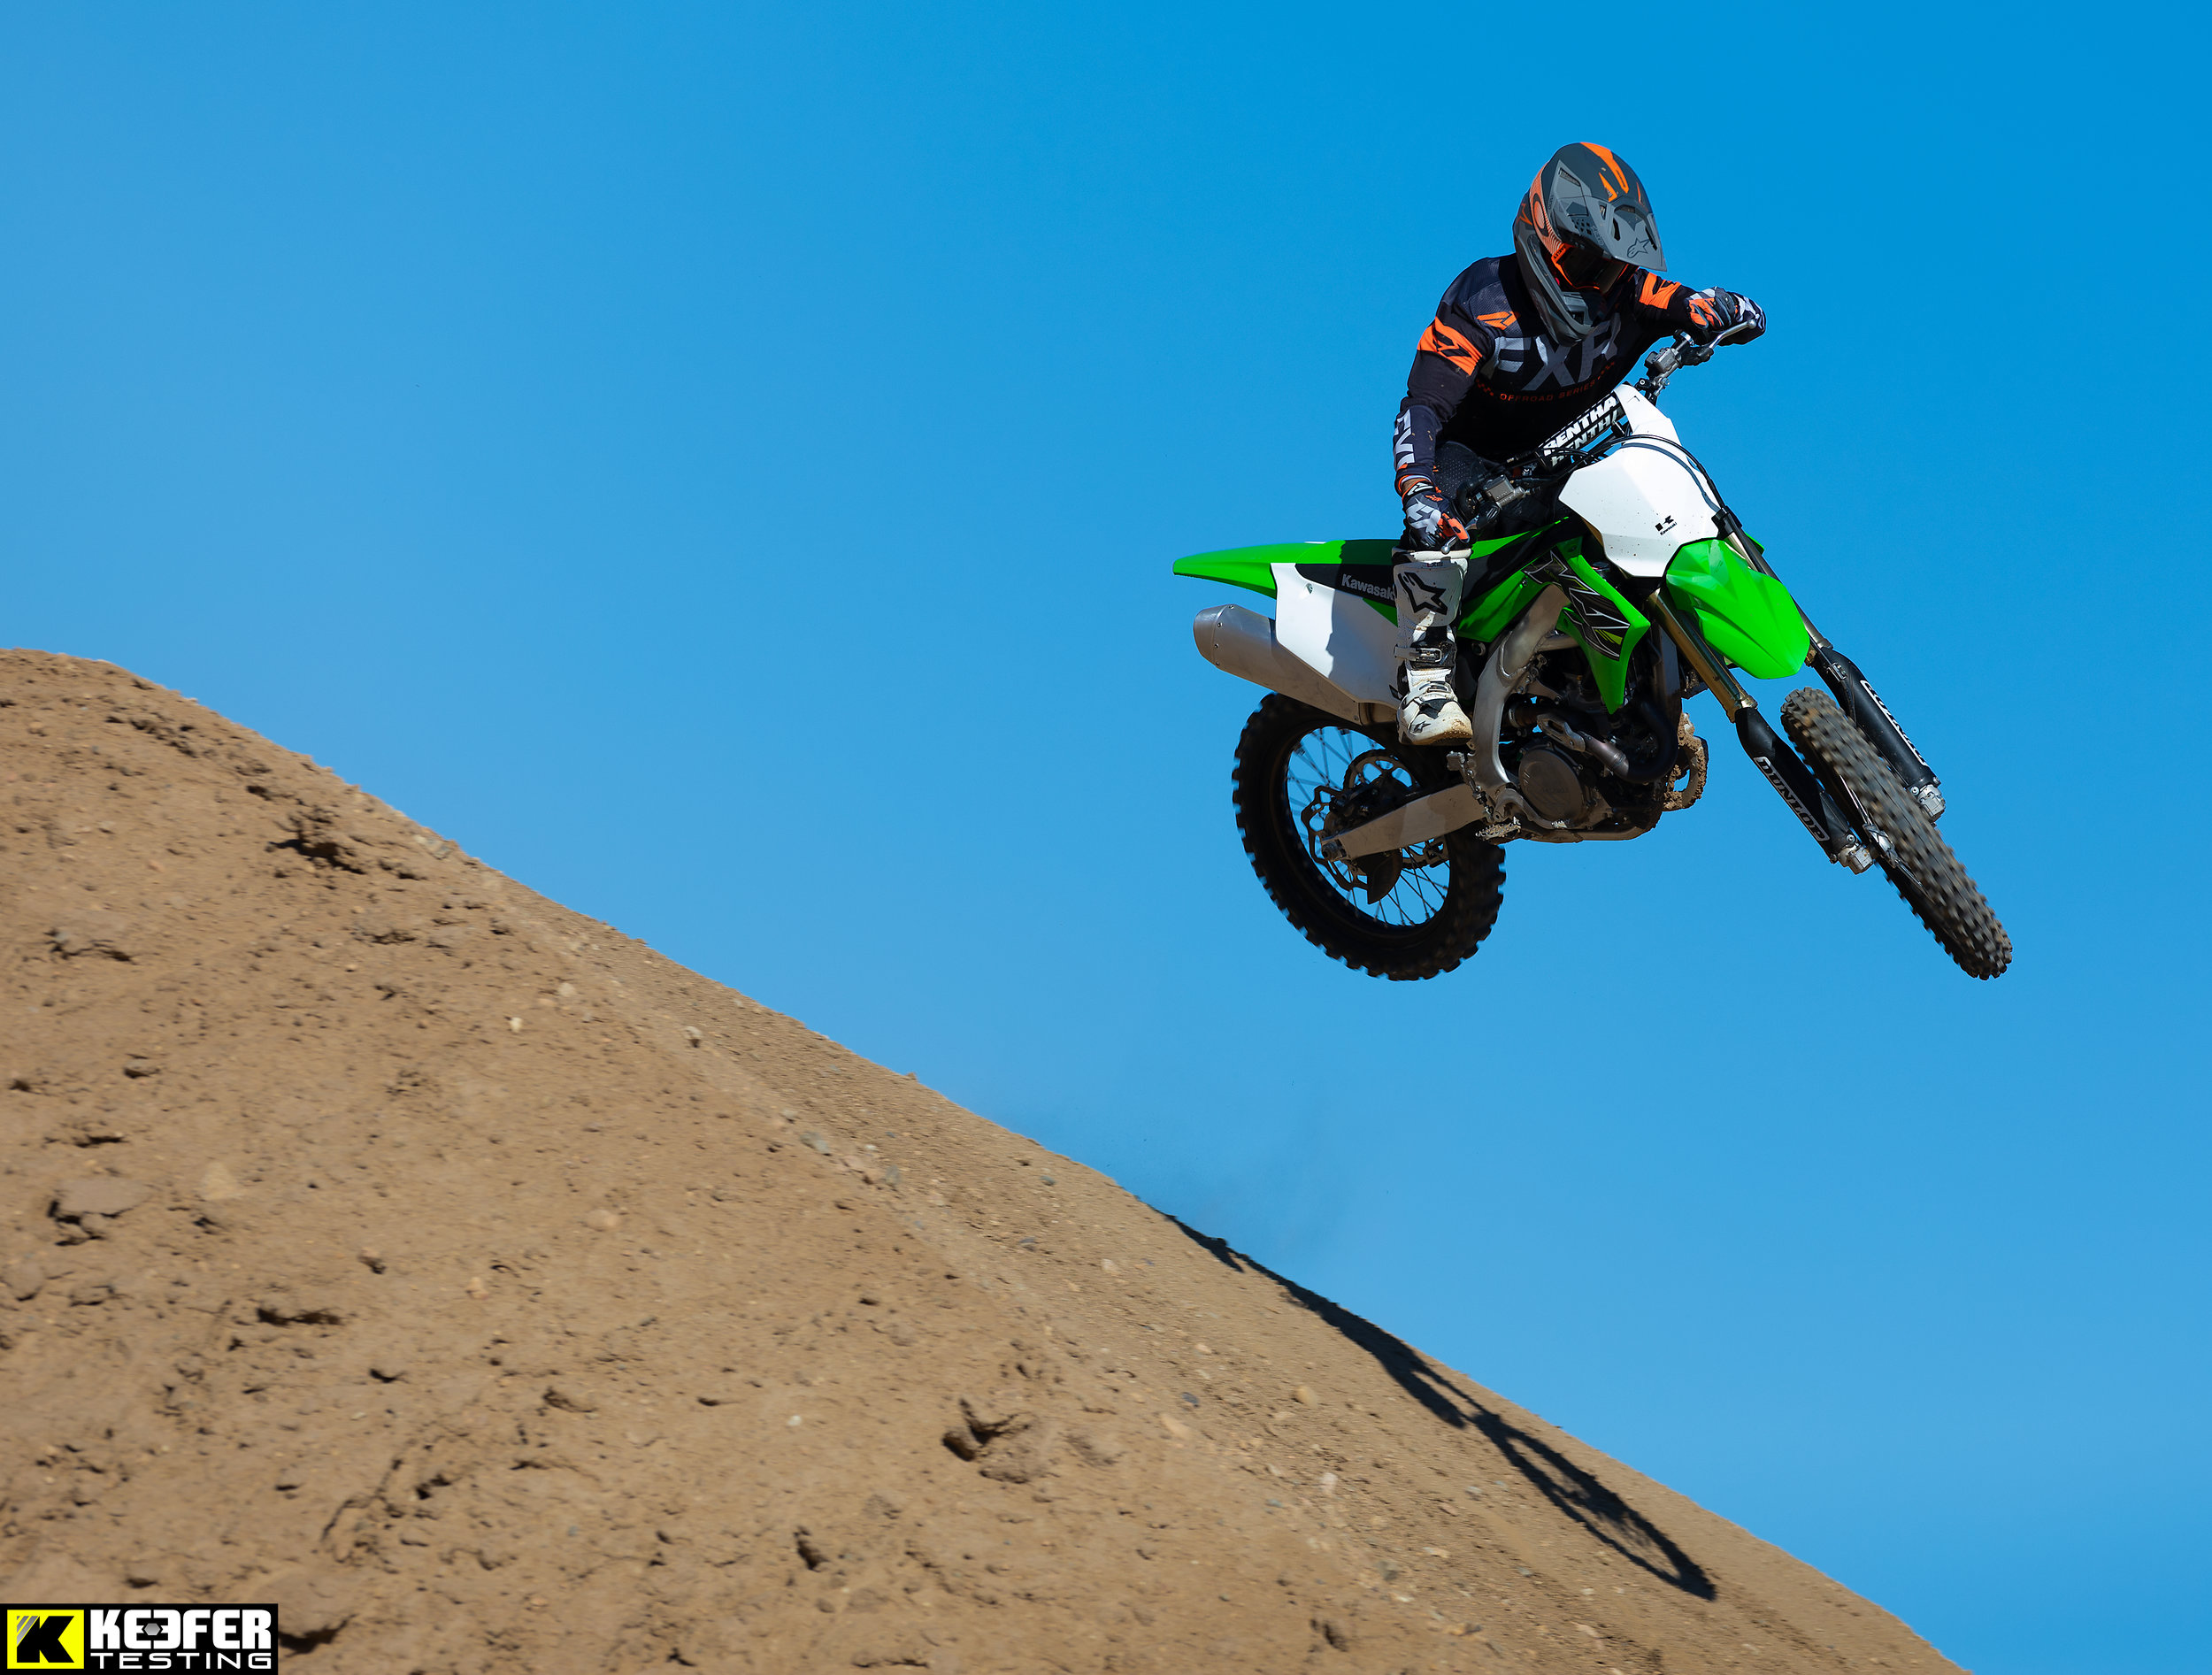 """The most improved machine in the 2019 450 MX Shootout belongs to Team Green. The KX450 won the first day of the shootout and was a favorite of most testers throughout the week. The chassis is well behaved and can be pushed hard by the rider without it doing anything out of the ordinary. The lightweight feeling of the KX450 is noticed immediately around the track and the free-feeling engine character makes it a very fun/playful bike to ride. With four """"individual test rider opinion wins"""" it was the only other bike in the shootout to keep the Yamaha honest. Kudos to Kawasaki for making a great first year/generation KX450. That is not easy to do!"""